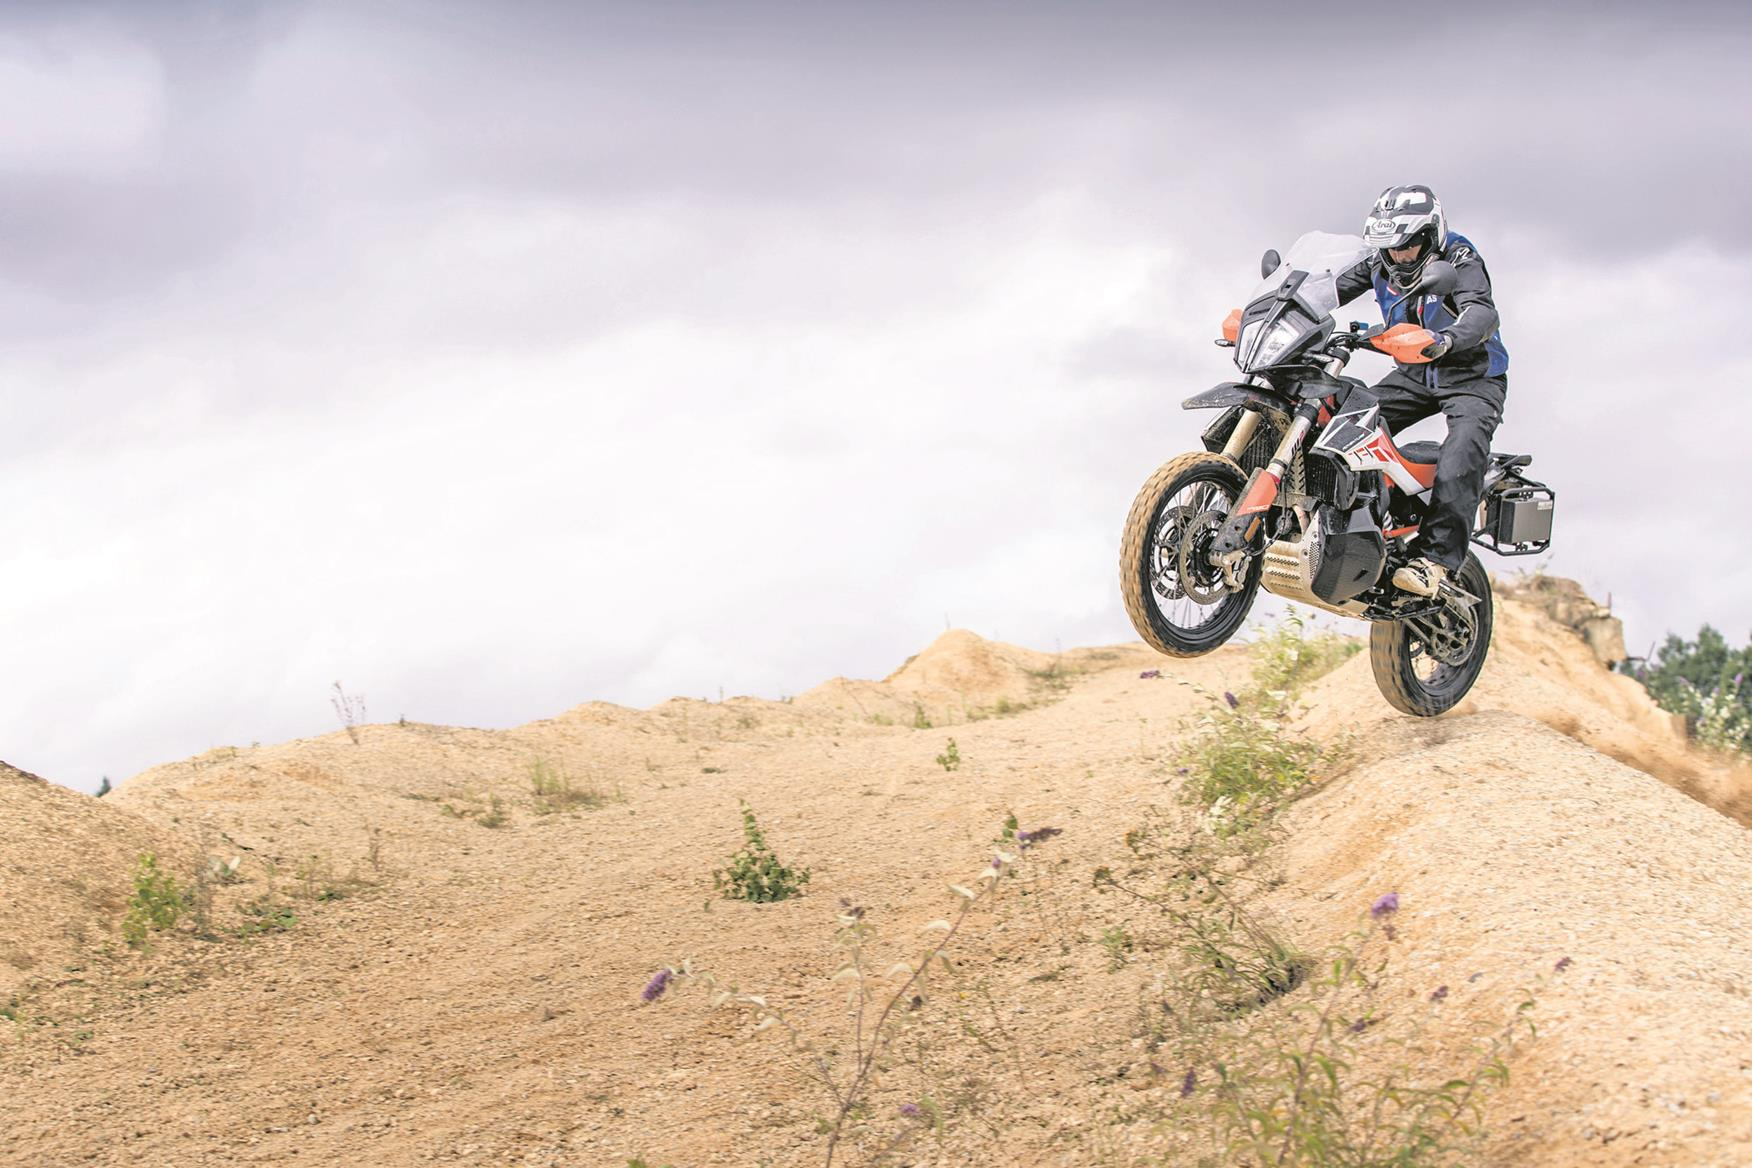 Catching air on the KTM 790 Adventure